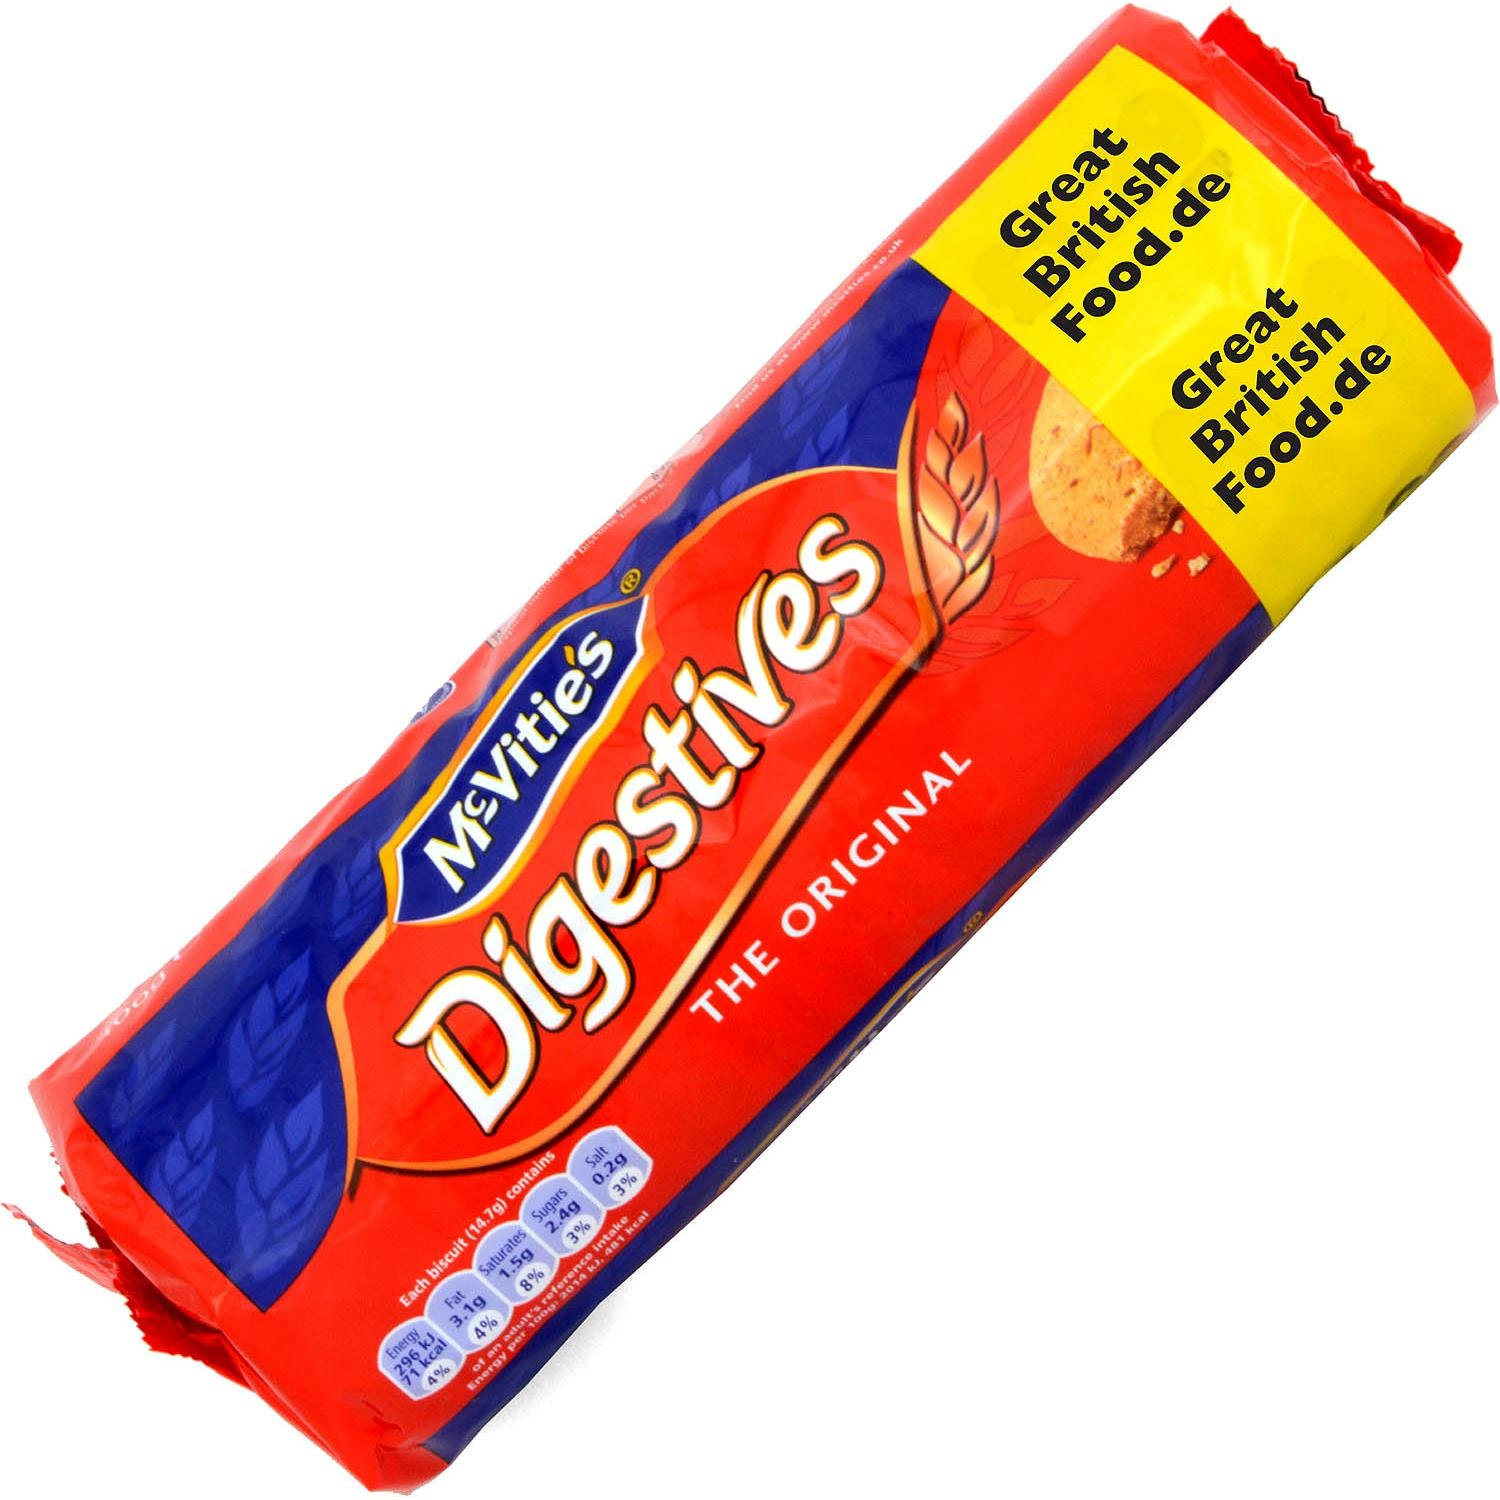 McVities Original Digestives 400g - Weizenkekse